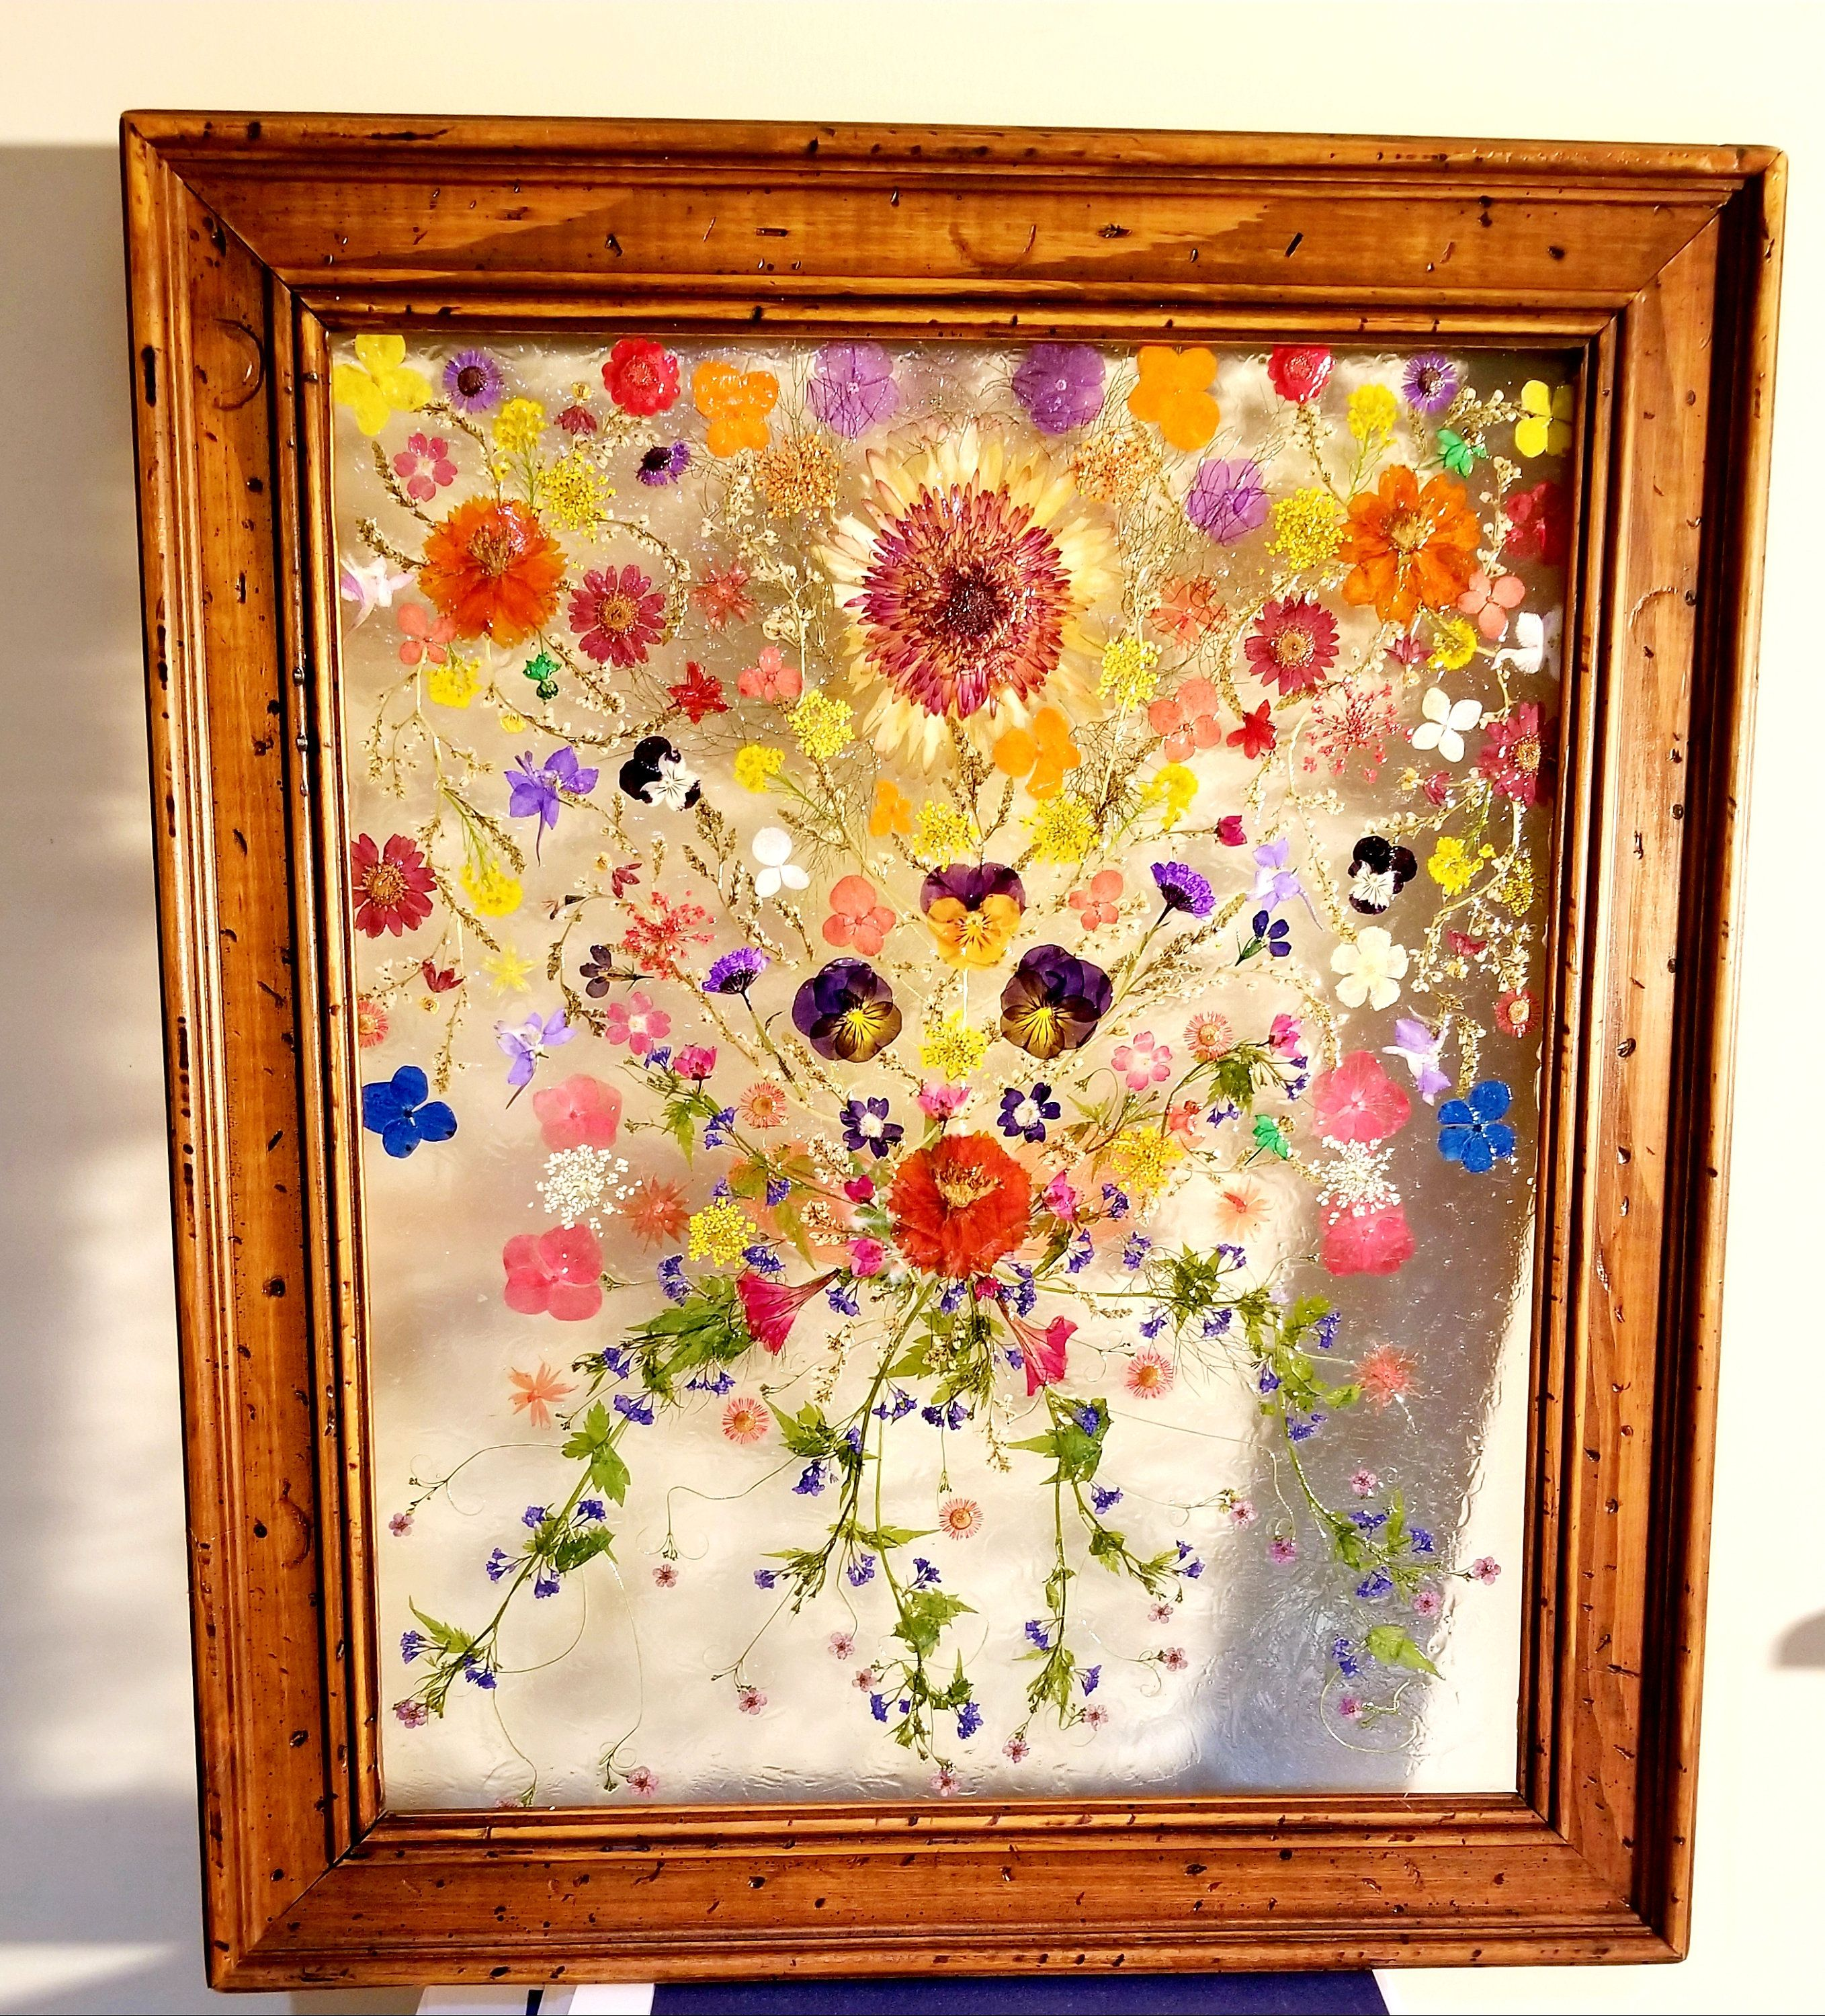 Now For Sale Real Pressed Flowers In Rustic 20 X 17 Wooden Floating Frame Pressed Flowers On Glass Framed Flower C Framed Flower Art Flower Frame Flower Art